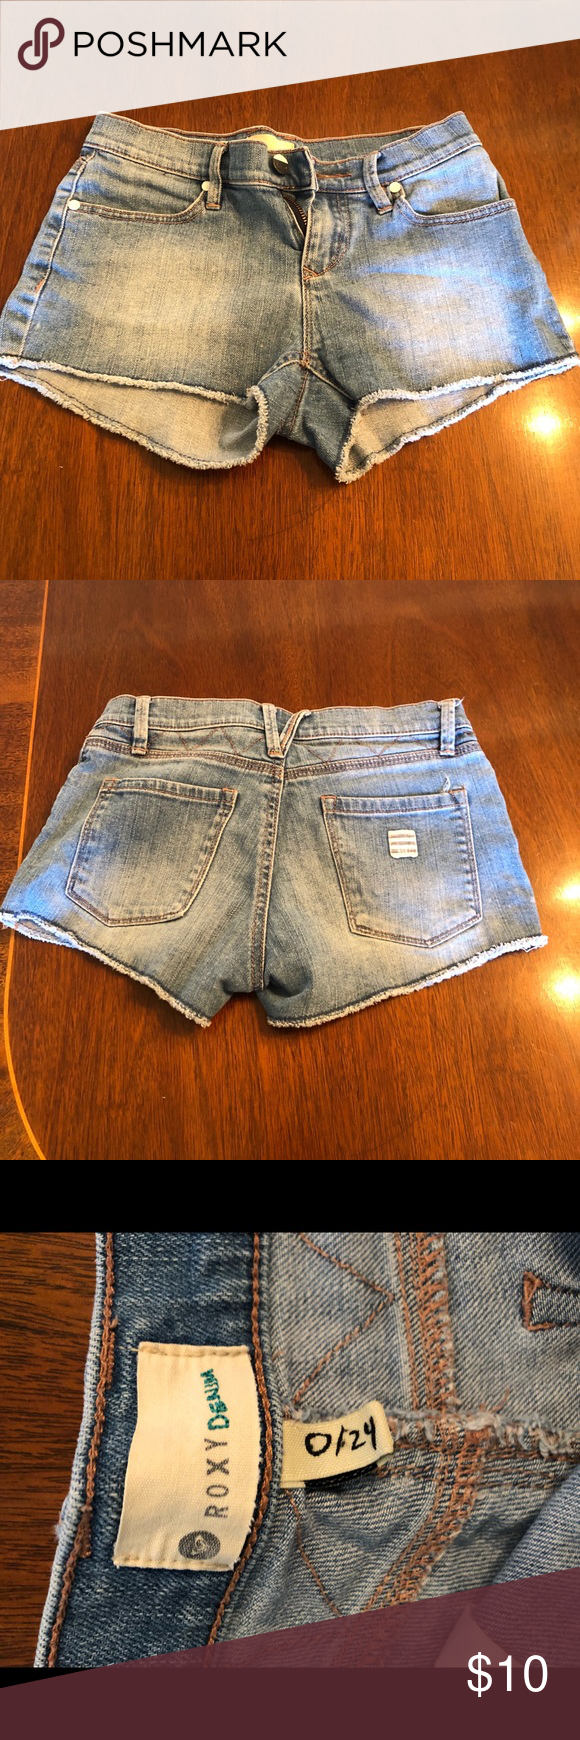 Roxy Denim Cutoff Shorts Light blue wash Roxy denim Cutoff shorts. Roxy Shorts Jean Shorts #denimcutoffshorts Roxy Denim Cutoff Shorts Light blue wash Roxy denim Cutoff shorts. Roxy Shorts Jean Shorts #denimcutoffshorts